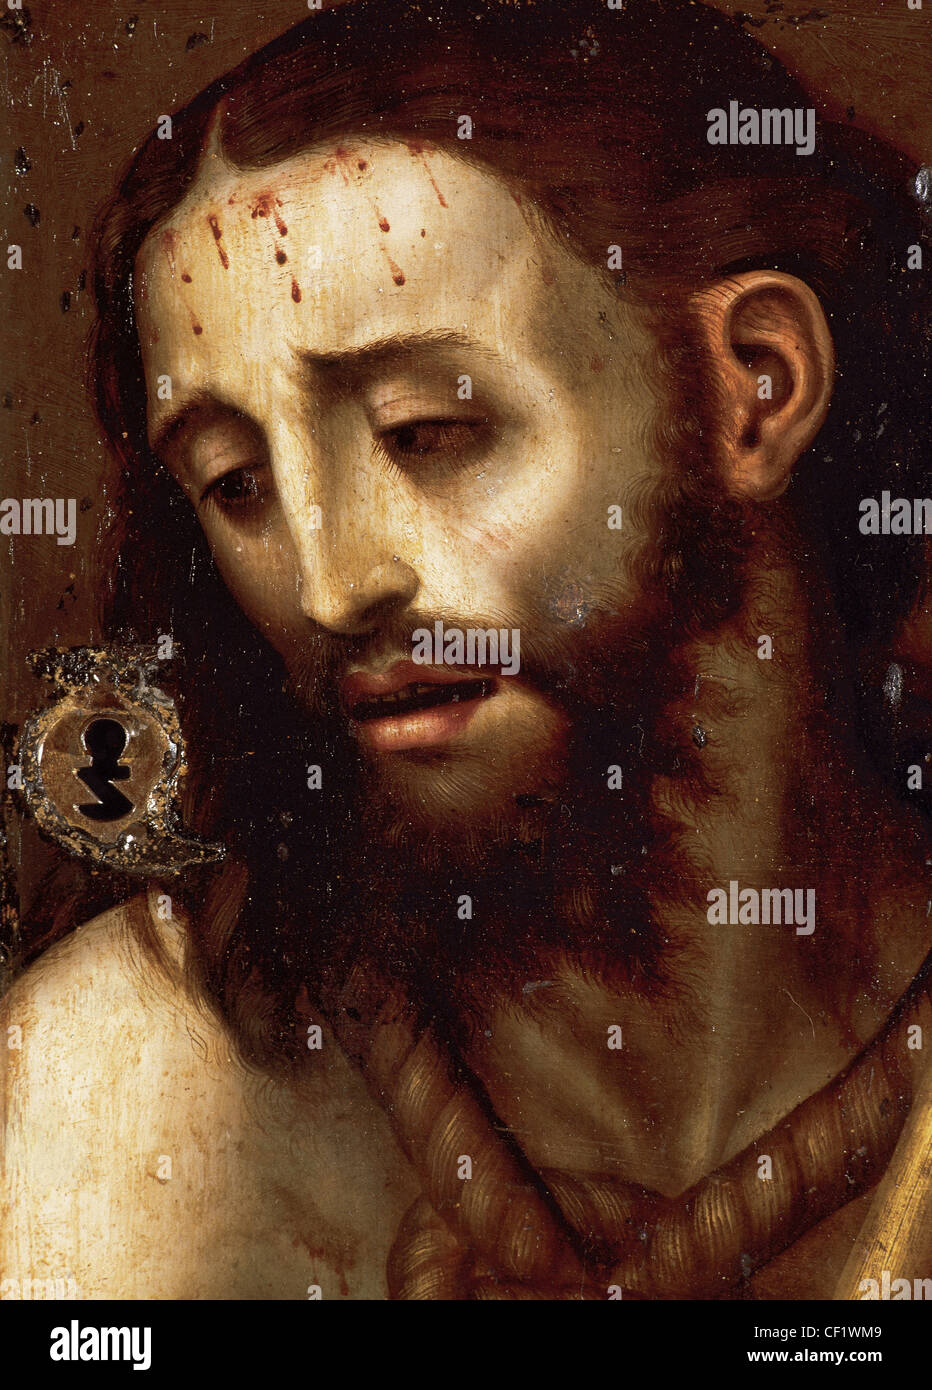 Luis de Morales, the Divine (c. 1510-1586). Spanish painter. Ecce Homo. - Stock Image